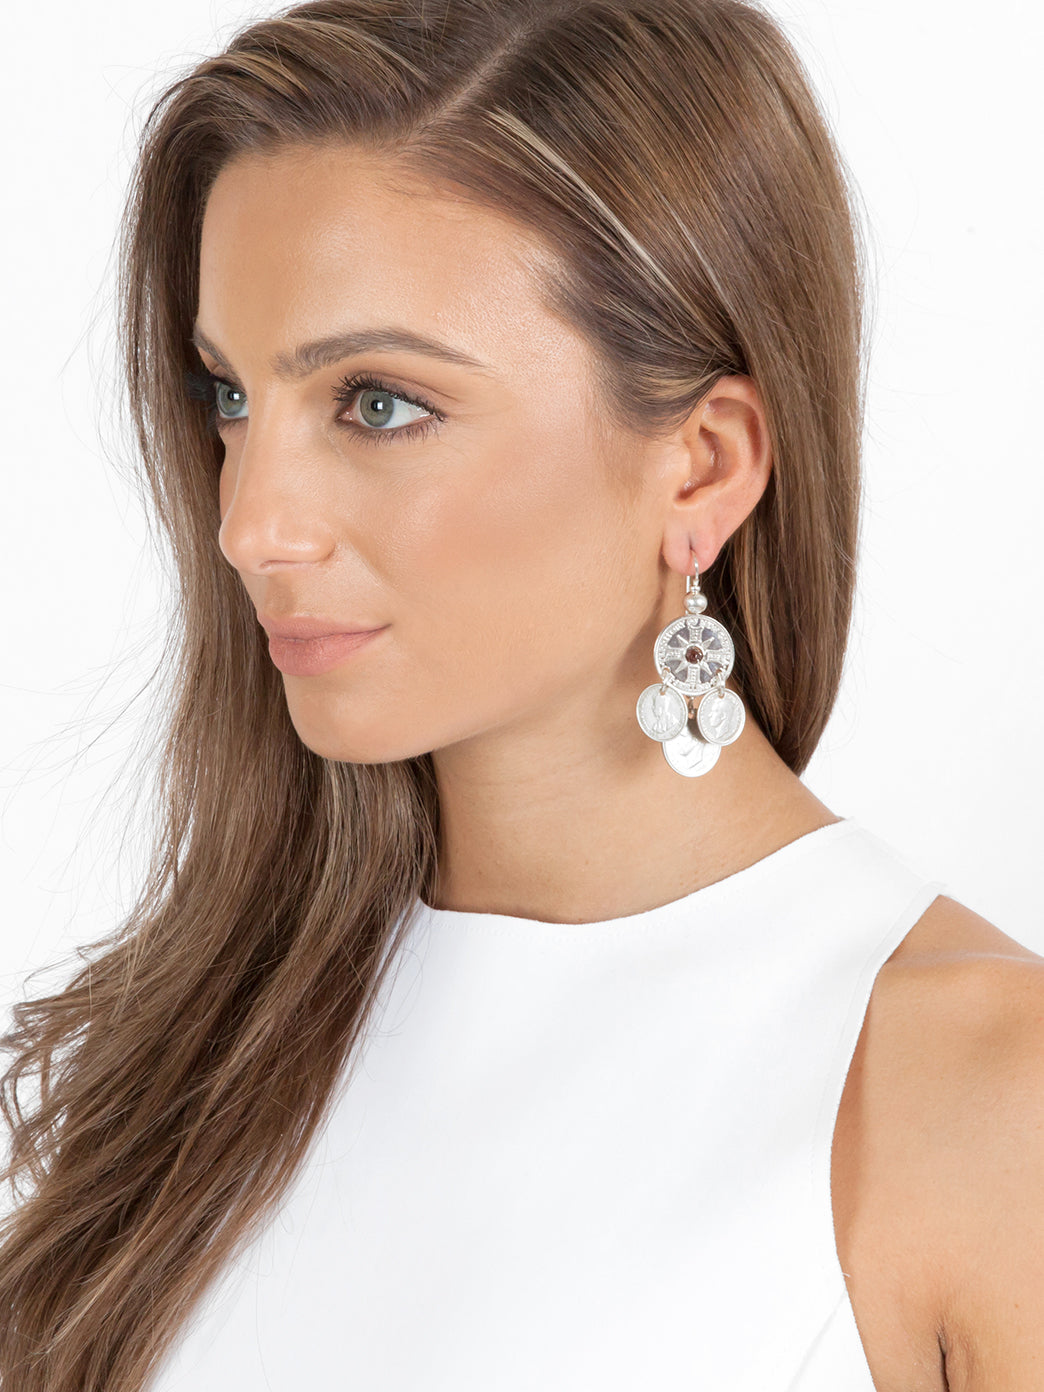 Fiorina Jewellery Gypsy Coin Earrings Model